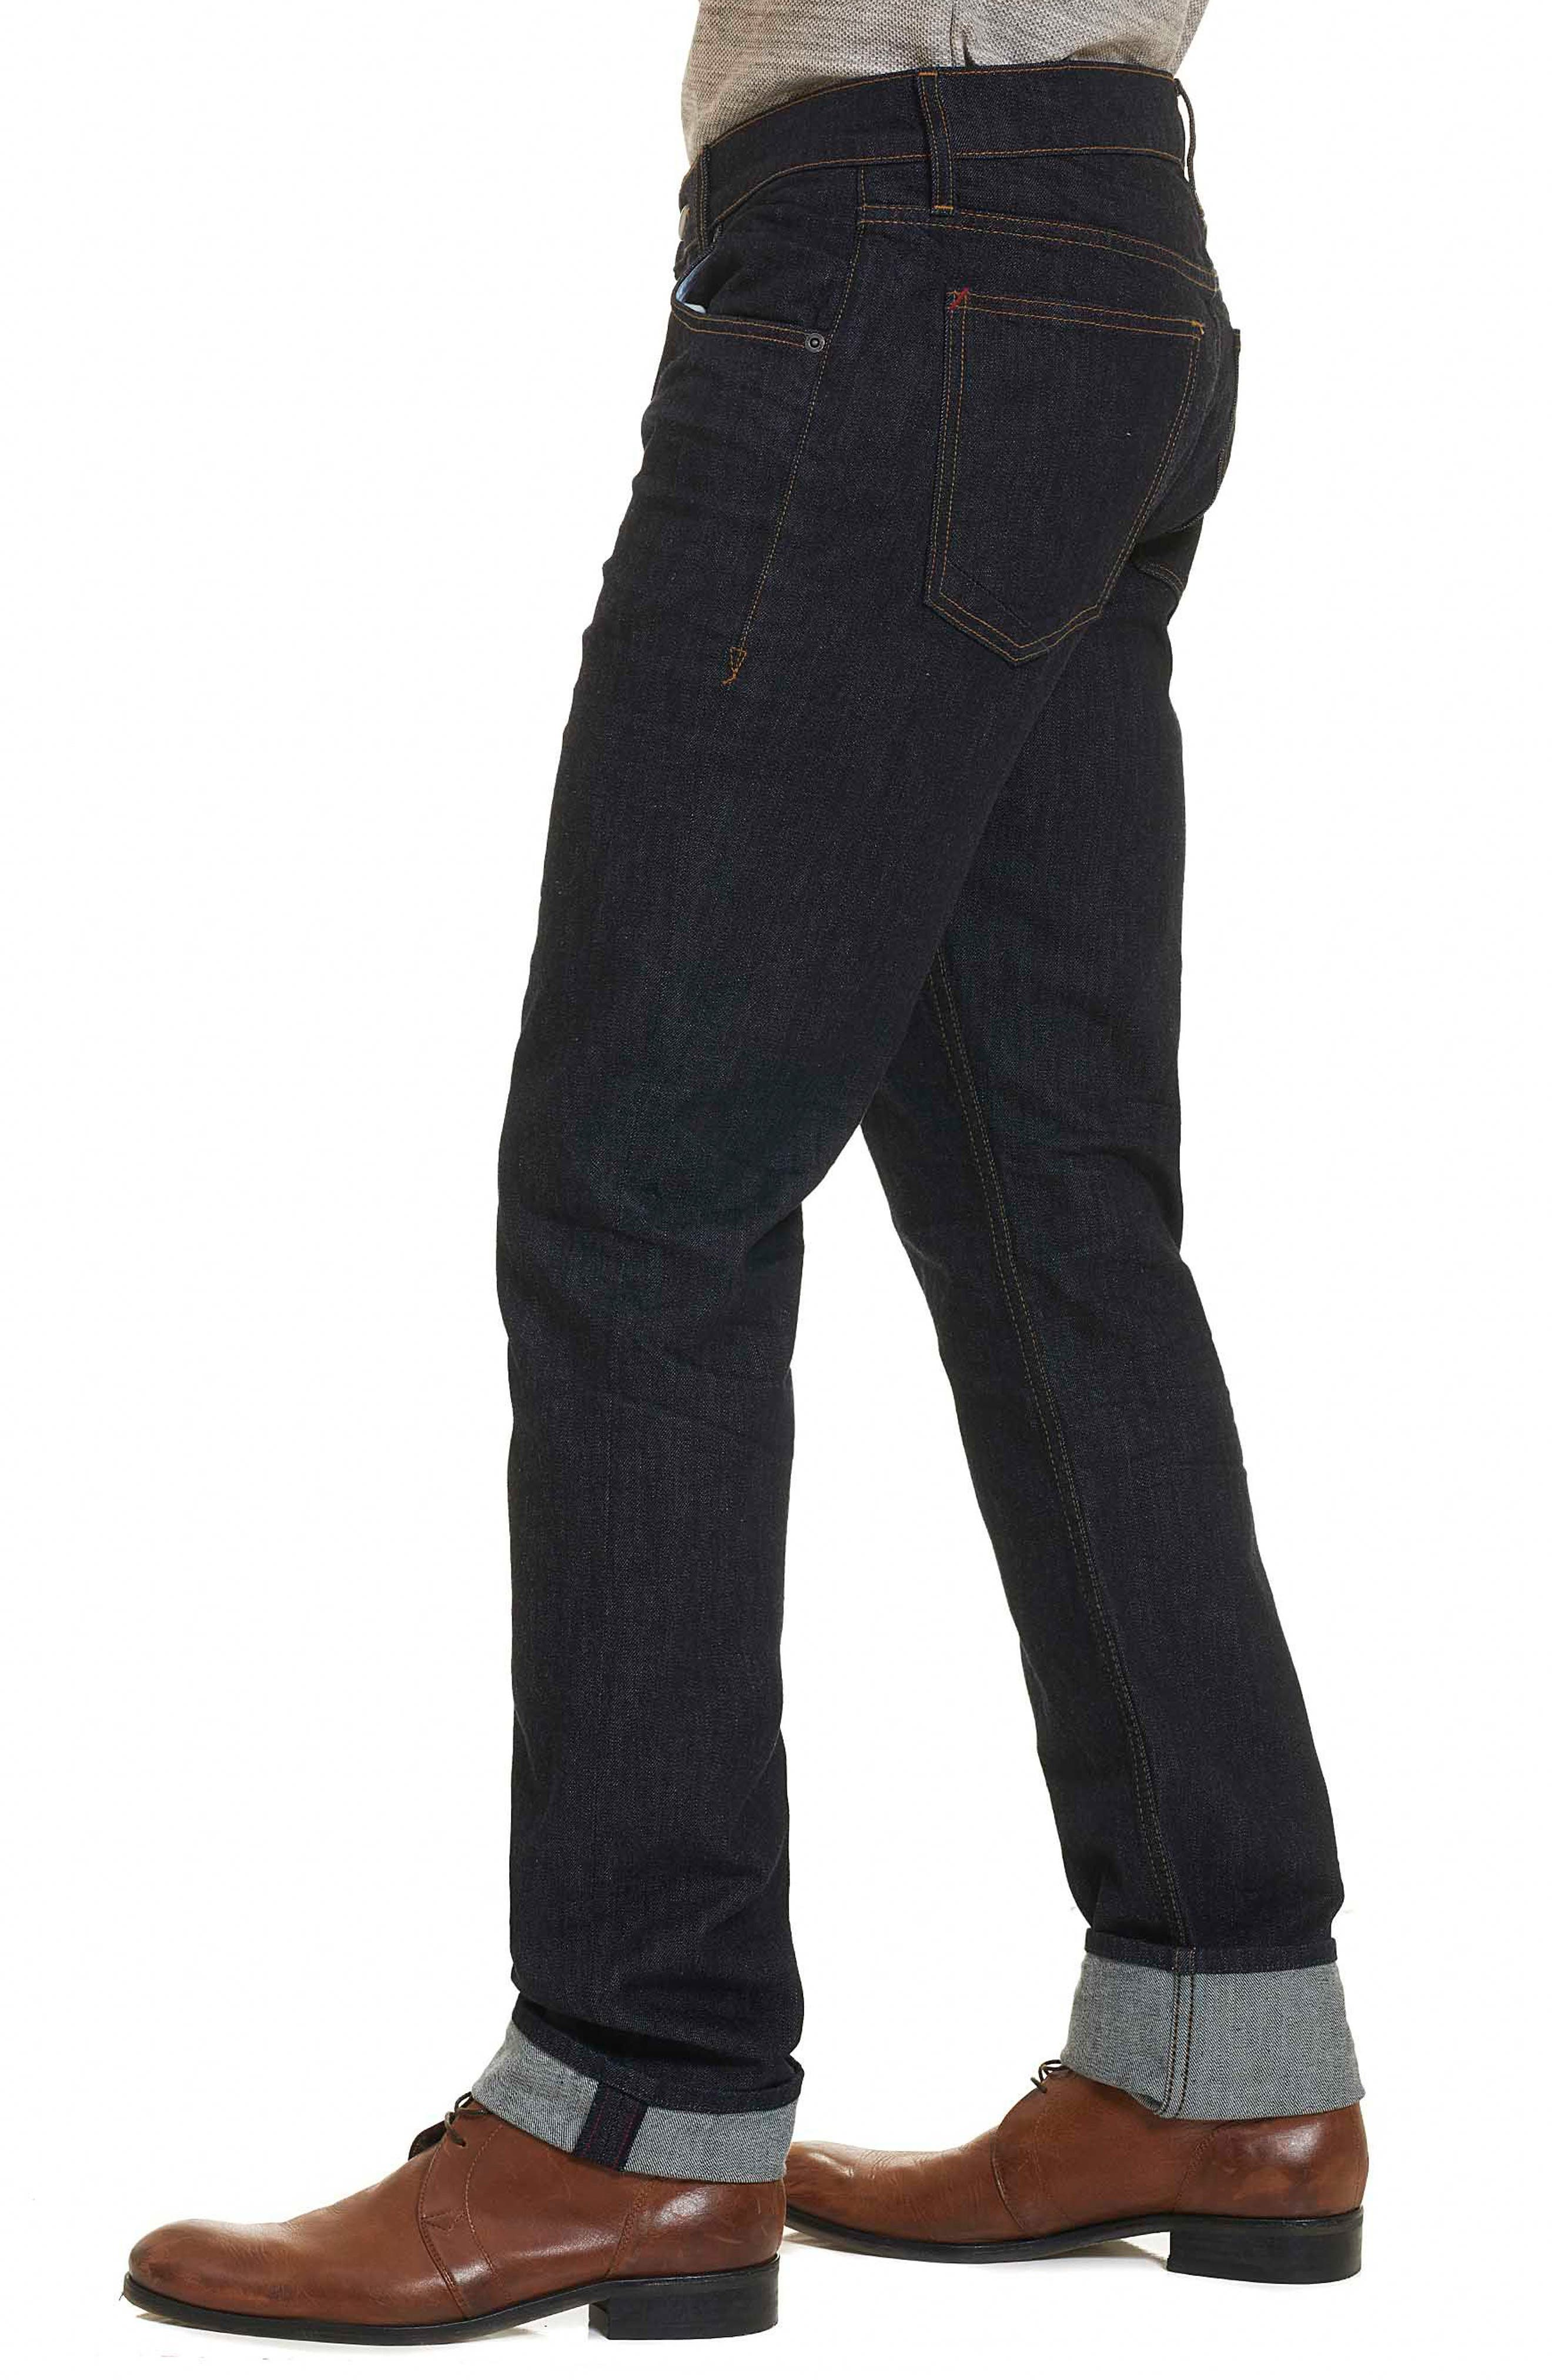 Resist Tailored Fit Jeans,                             Alternate thumbnail 3, color,                             405